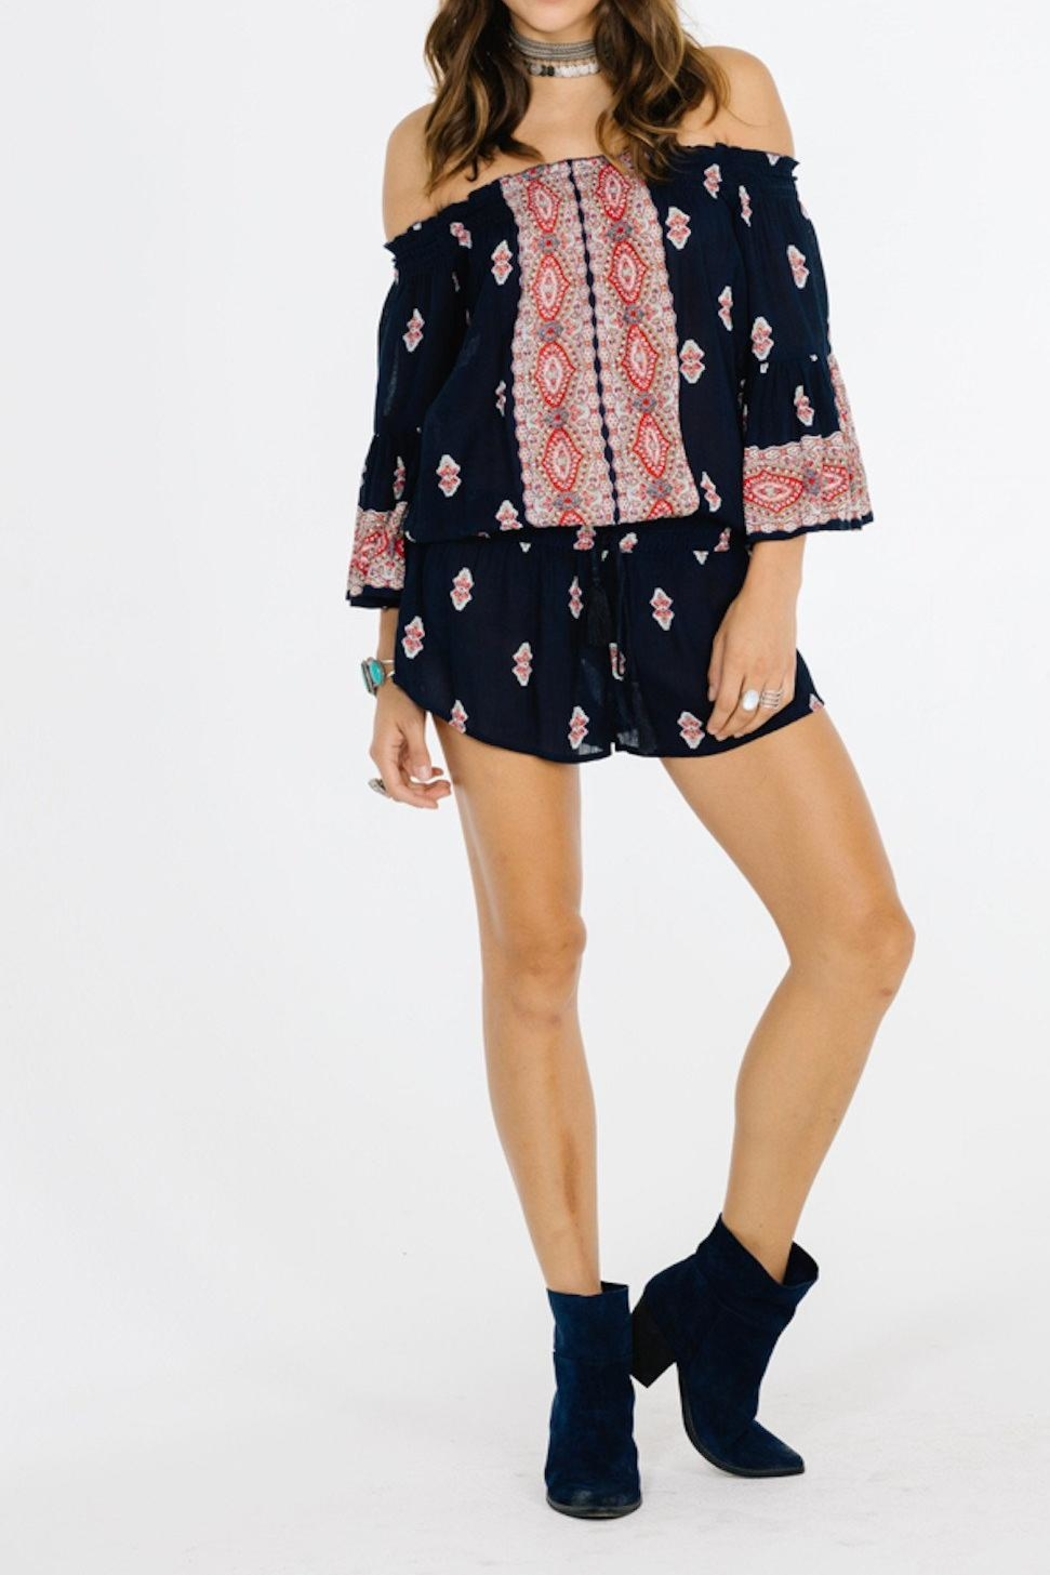 0824a3fe2d9cf Raga Endless Love Romper from Mississippi by Popfizz Boutique ...